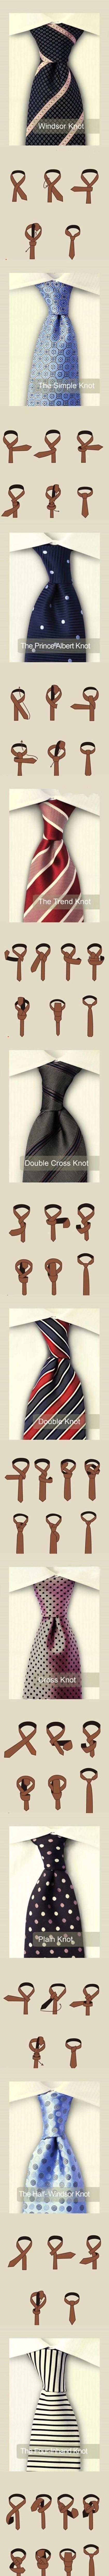 Diy Ties Diy Diy Ideas Diy Clothes Easy Diy Diy Fashion Diy Tie Mens Diy